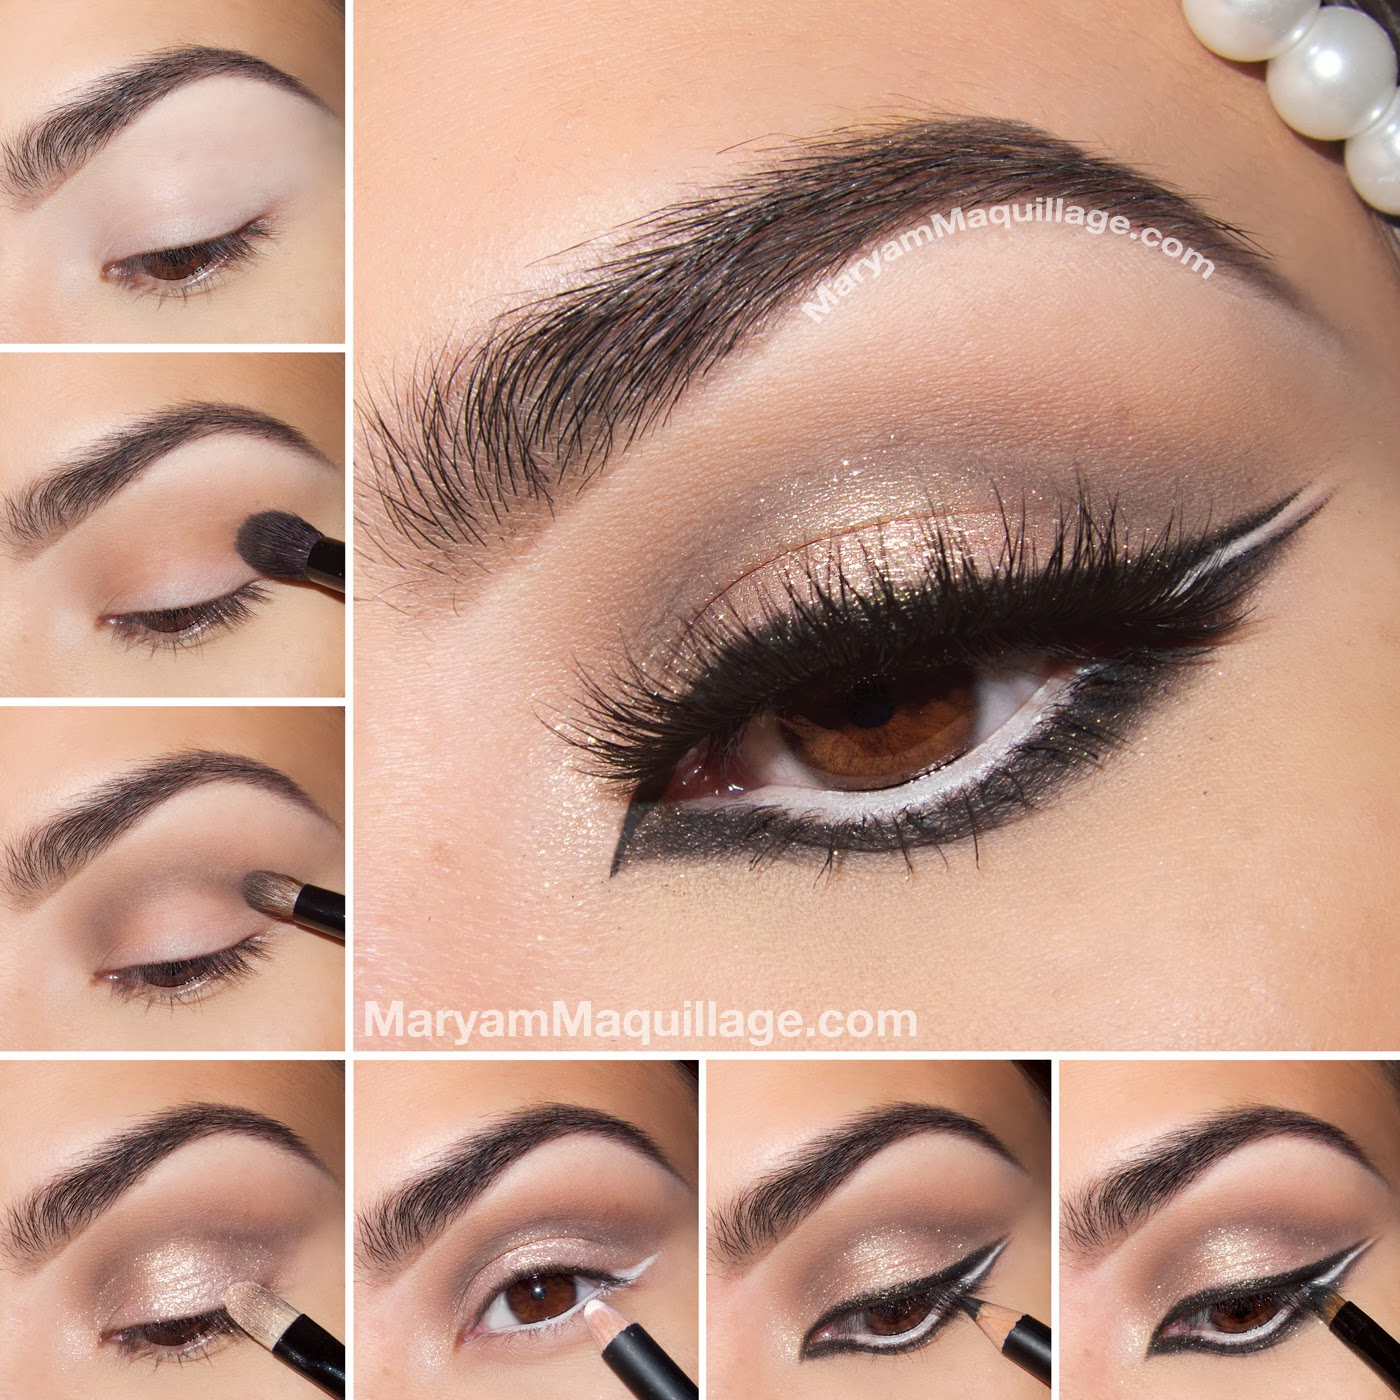 Maryam Maquillage Quot Wintry Exotic Quot Arabic Makeup Tutorial